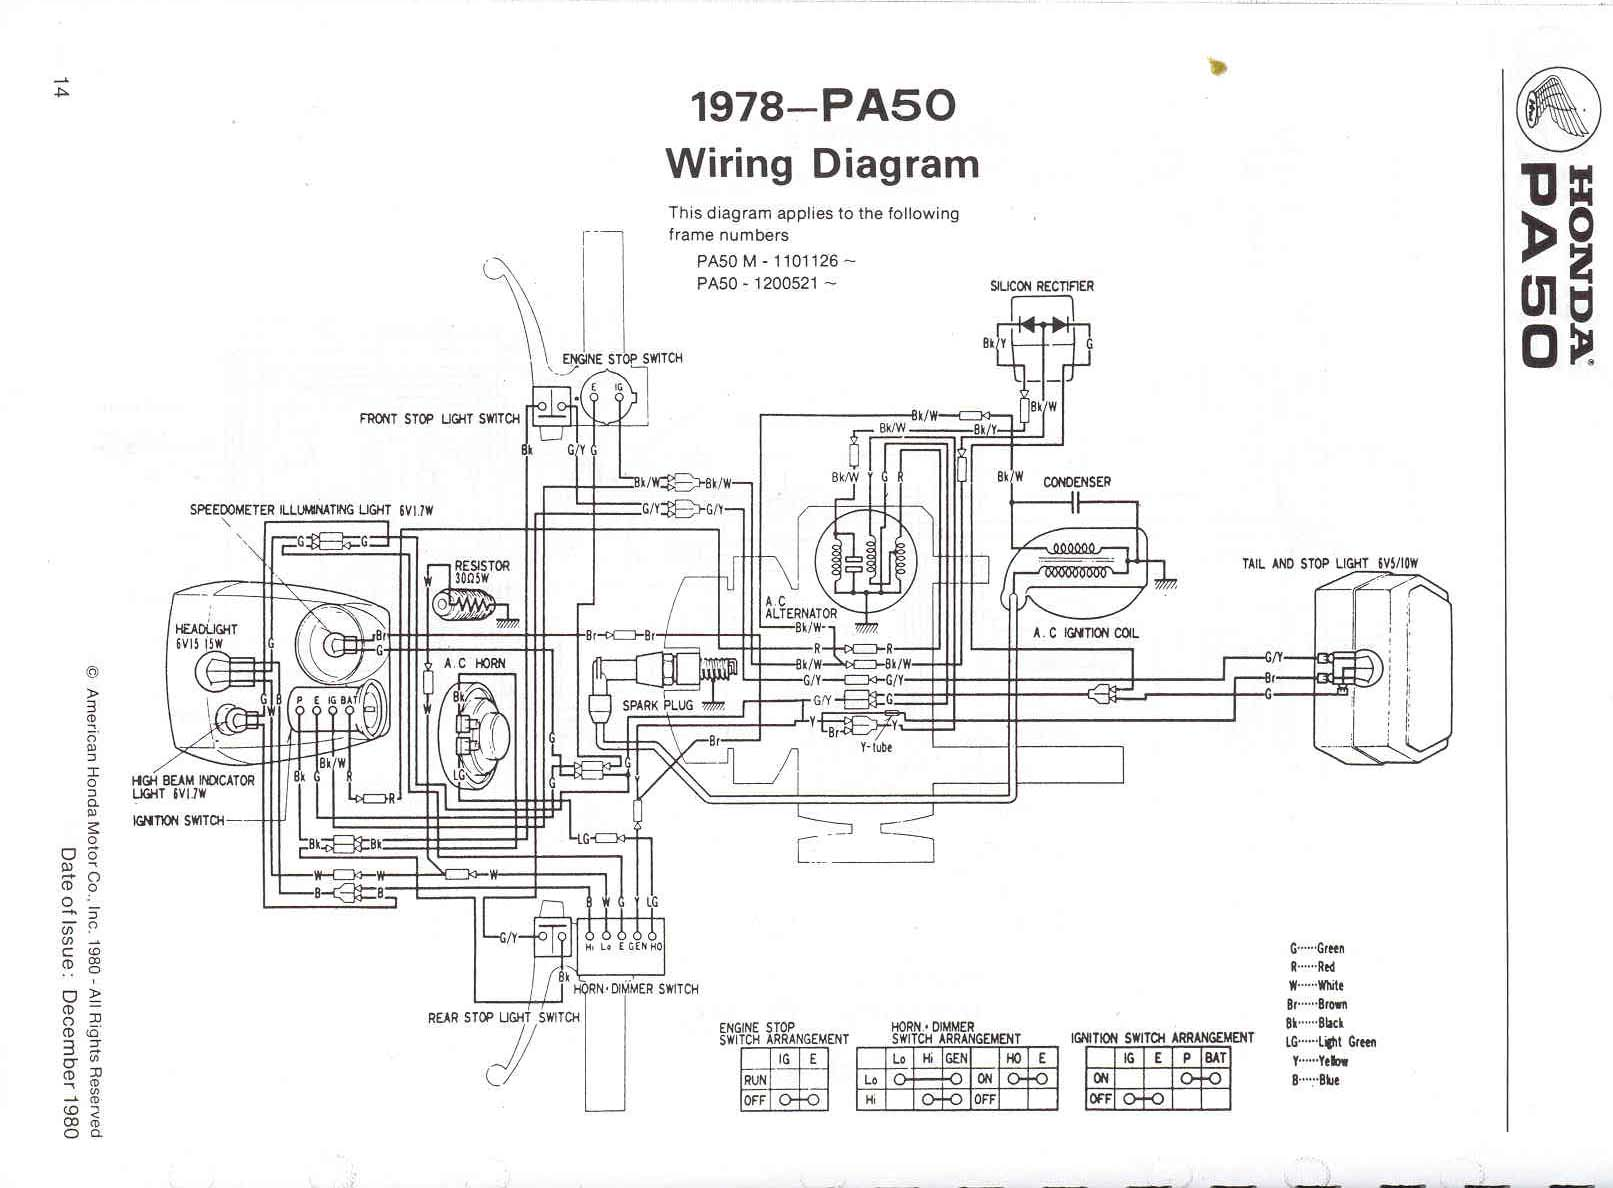 1982 Honda Ct70 Wiring Diagram Another Blog About 1971 Cb175 Express Get Free Image